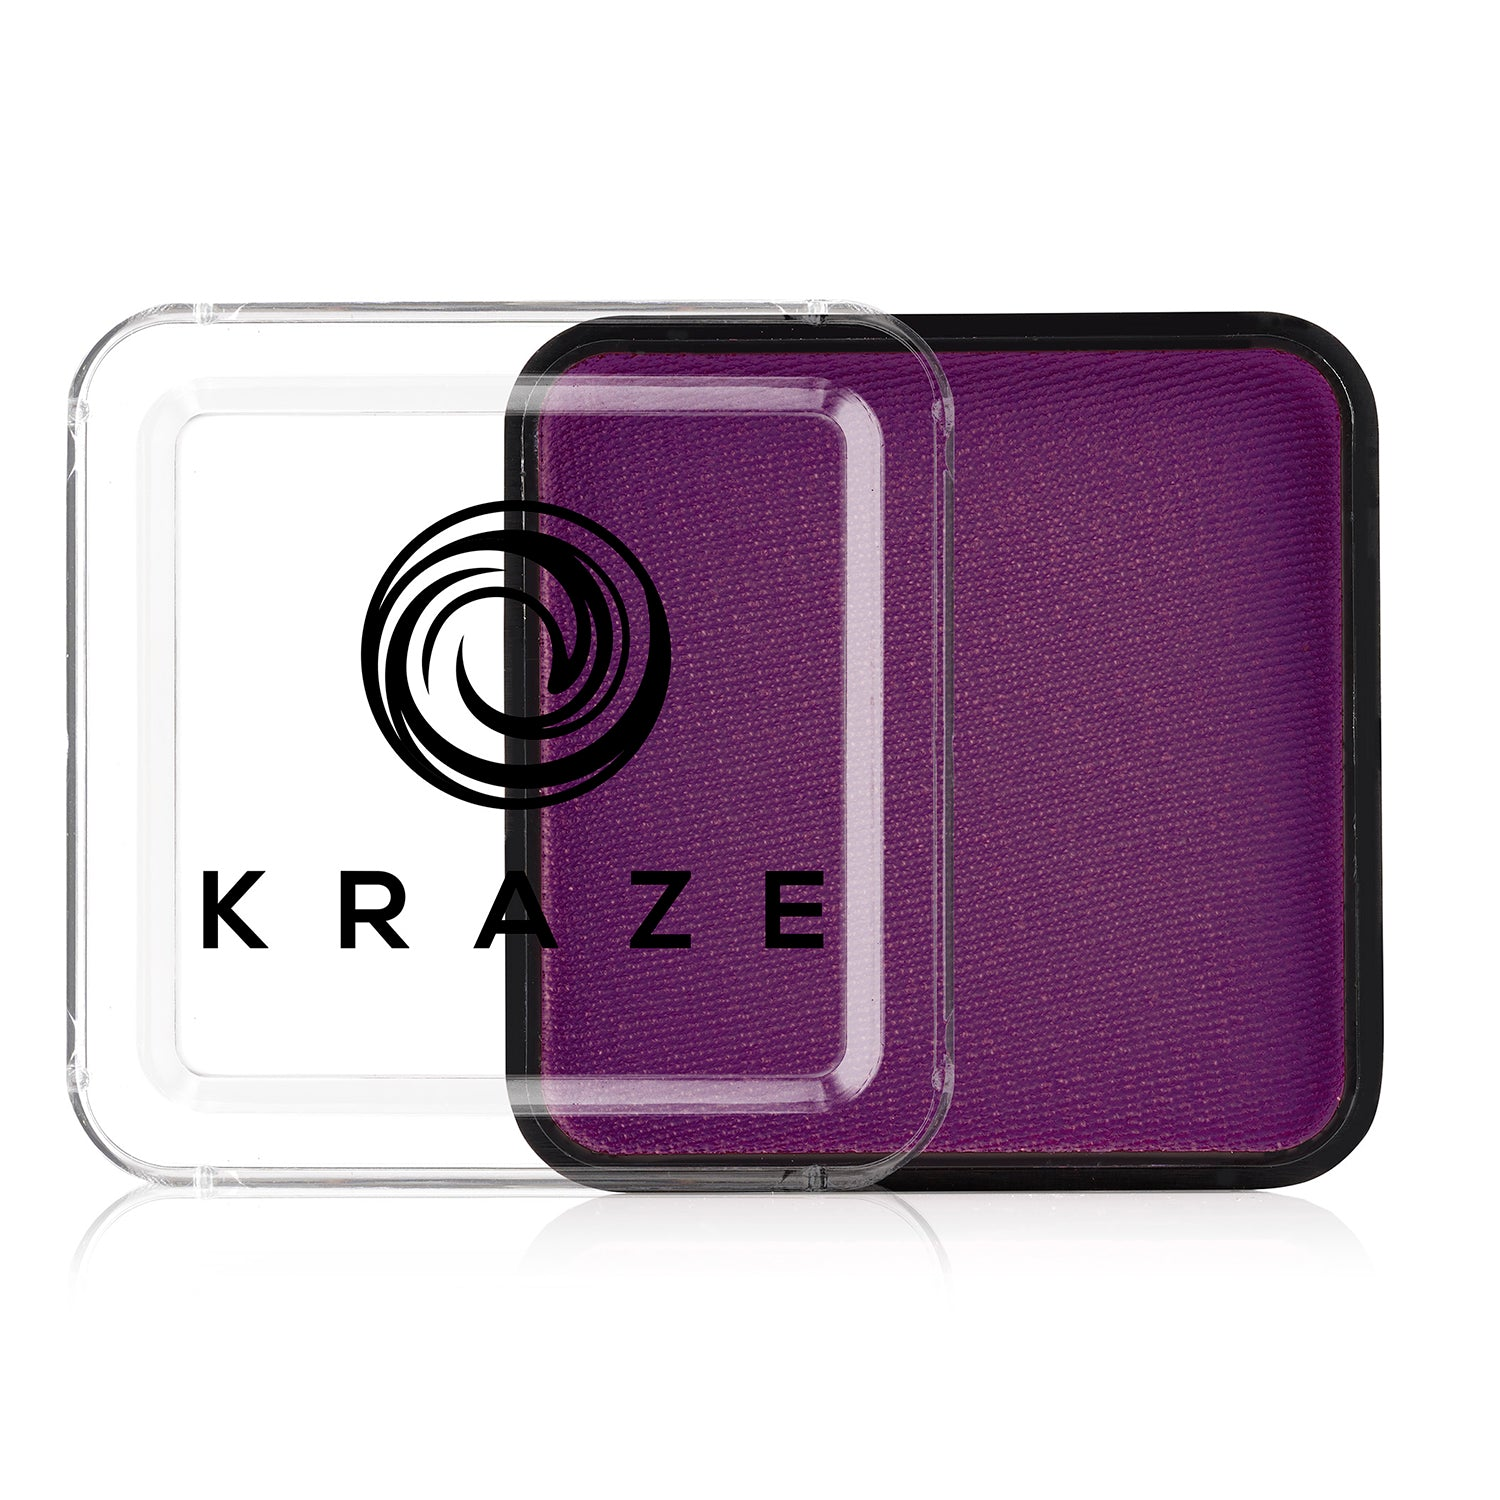 Kraze FX Face Paint - 25 gm - Metallic Deep Purple